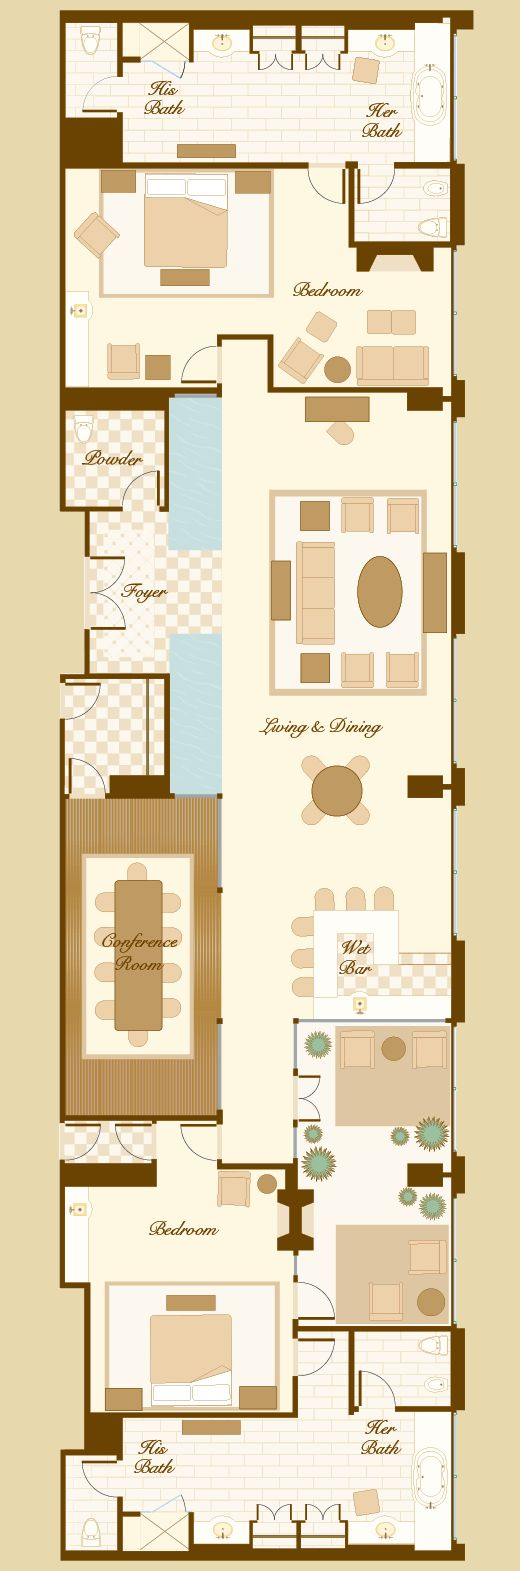 23 best amazing las vegas hotel suites images on pinterest hotel chairman suite at the bellagio hotel las vegas floorplans i class